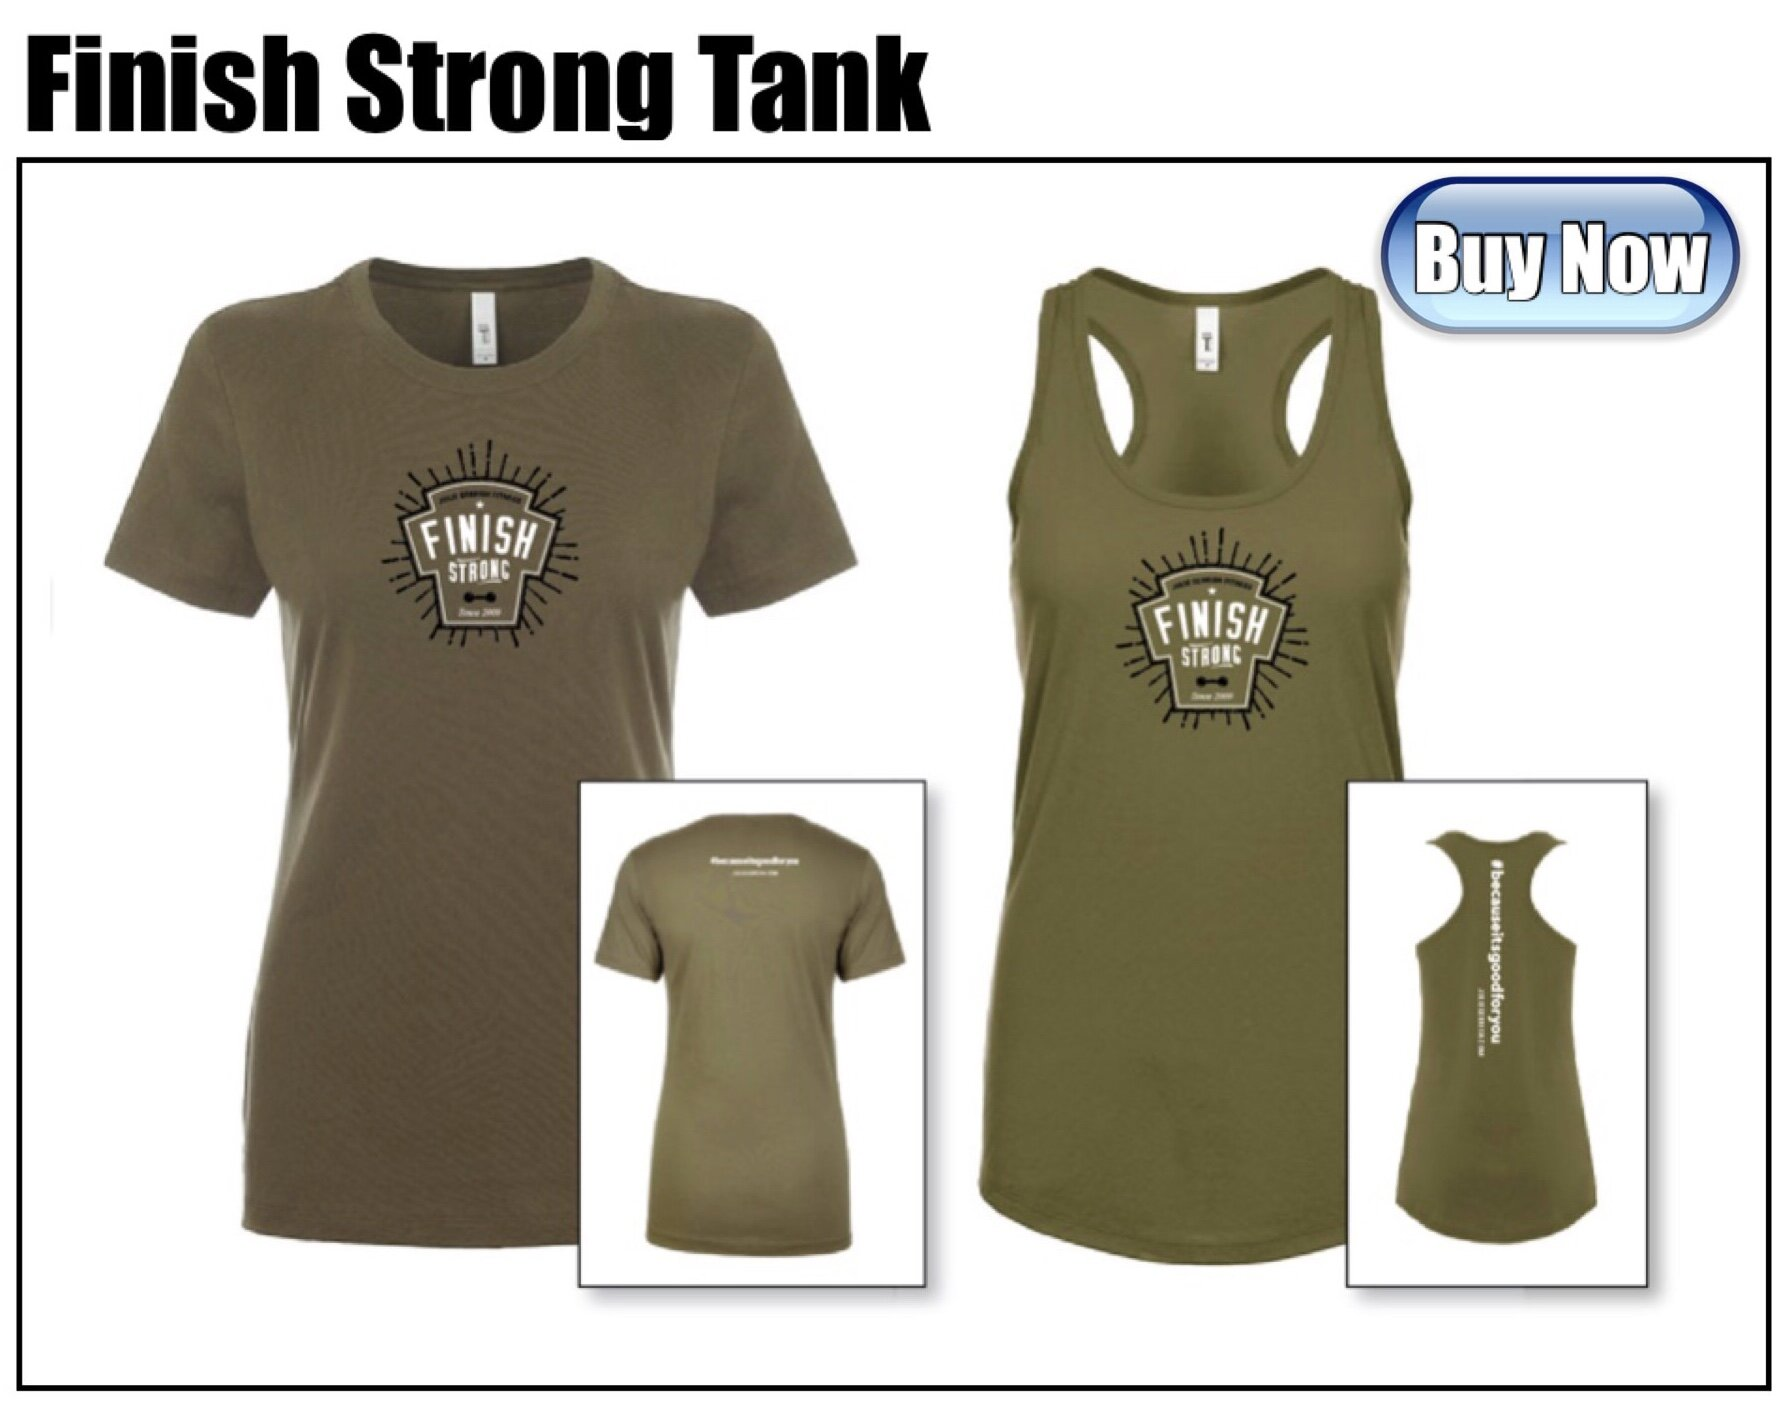 Now taking orders for the Finish Strong tank top and tee in army green, designed by the amazing Jennifer Novelline! This tank is a 65/35 poly/cotton blend and comes in sizes XS to 2XL. Cost of the tank is $20.00. Order online today!